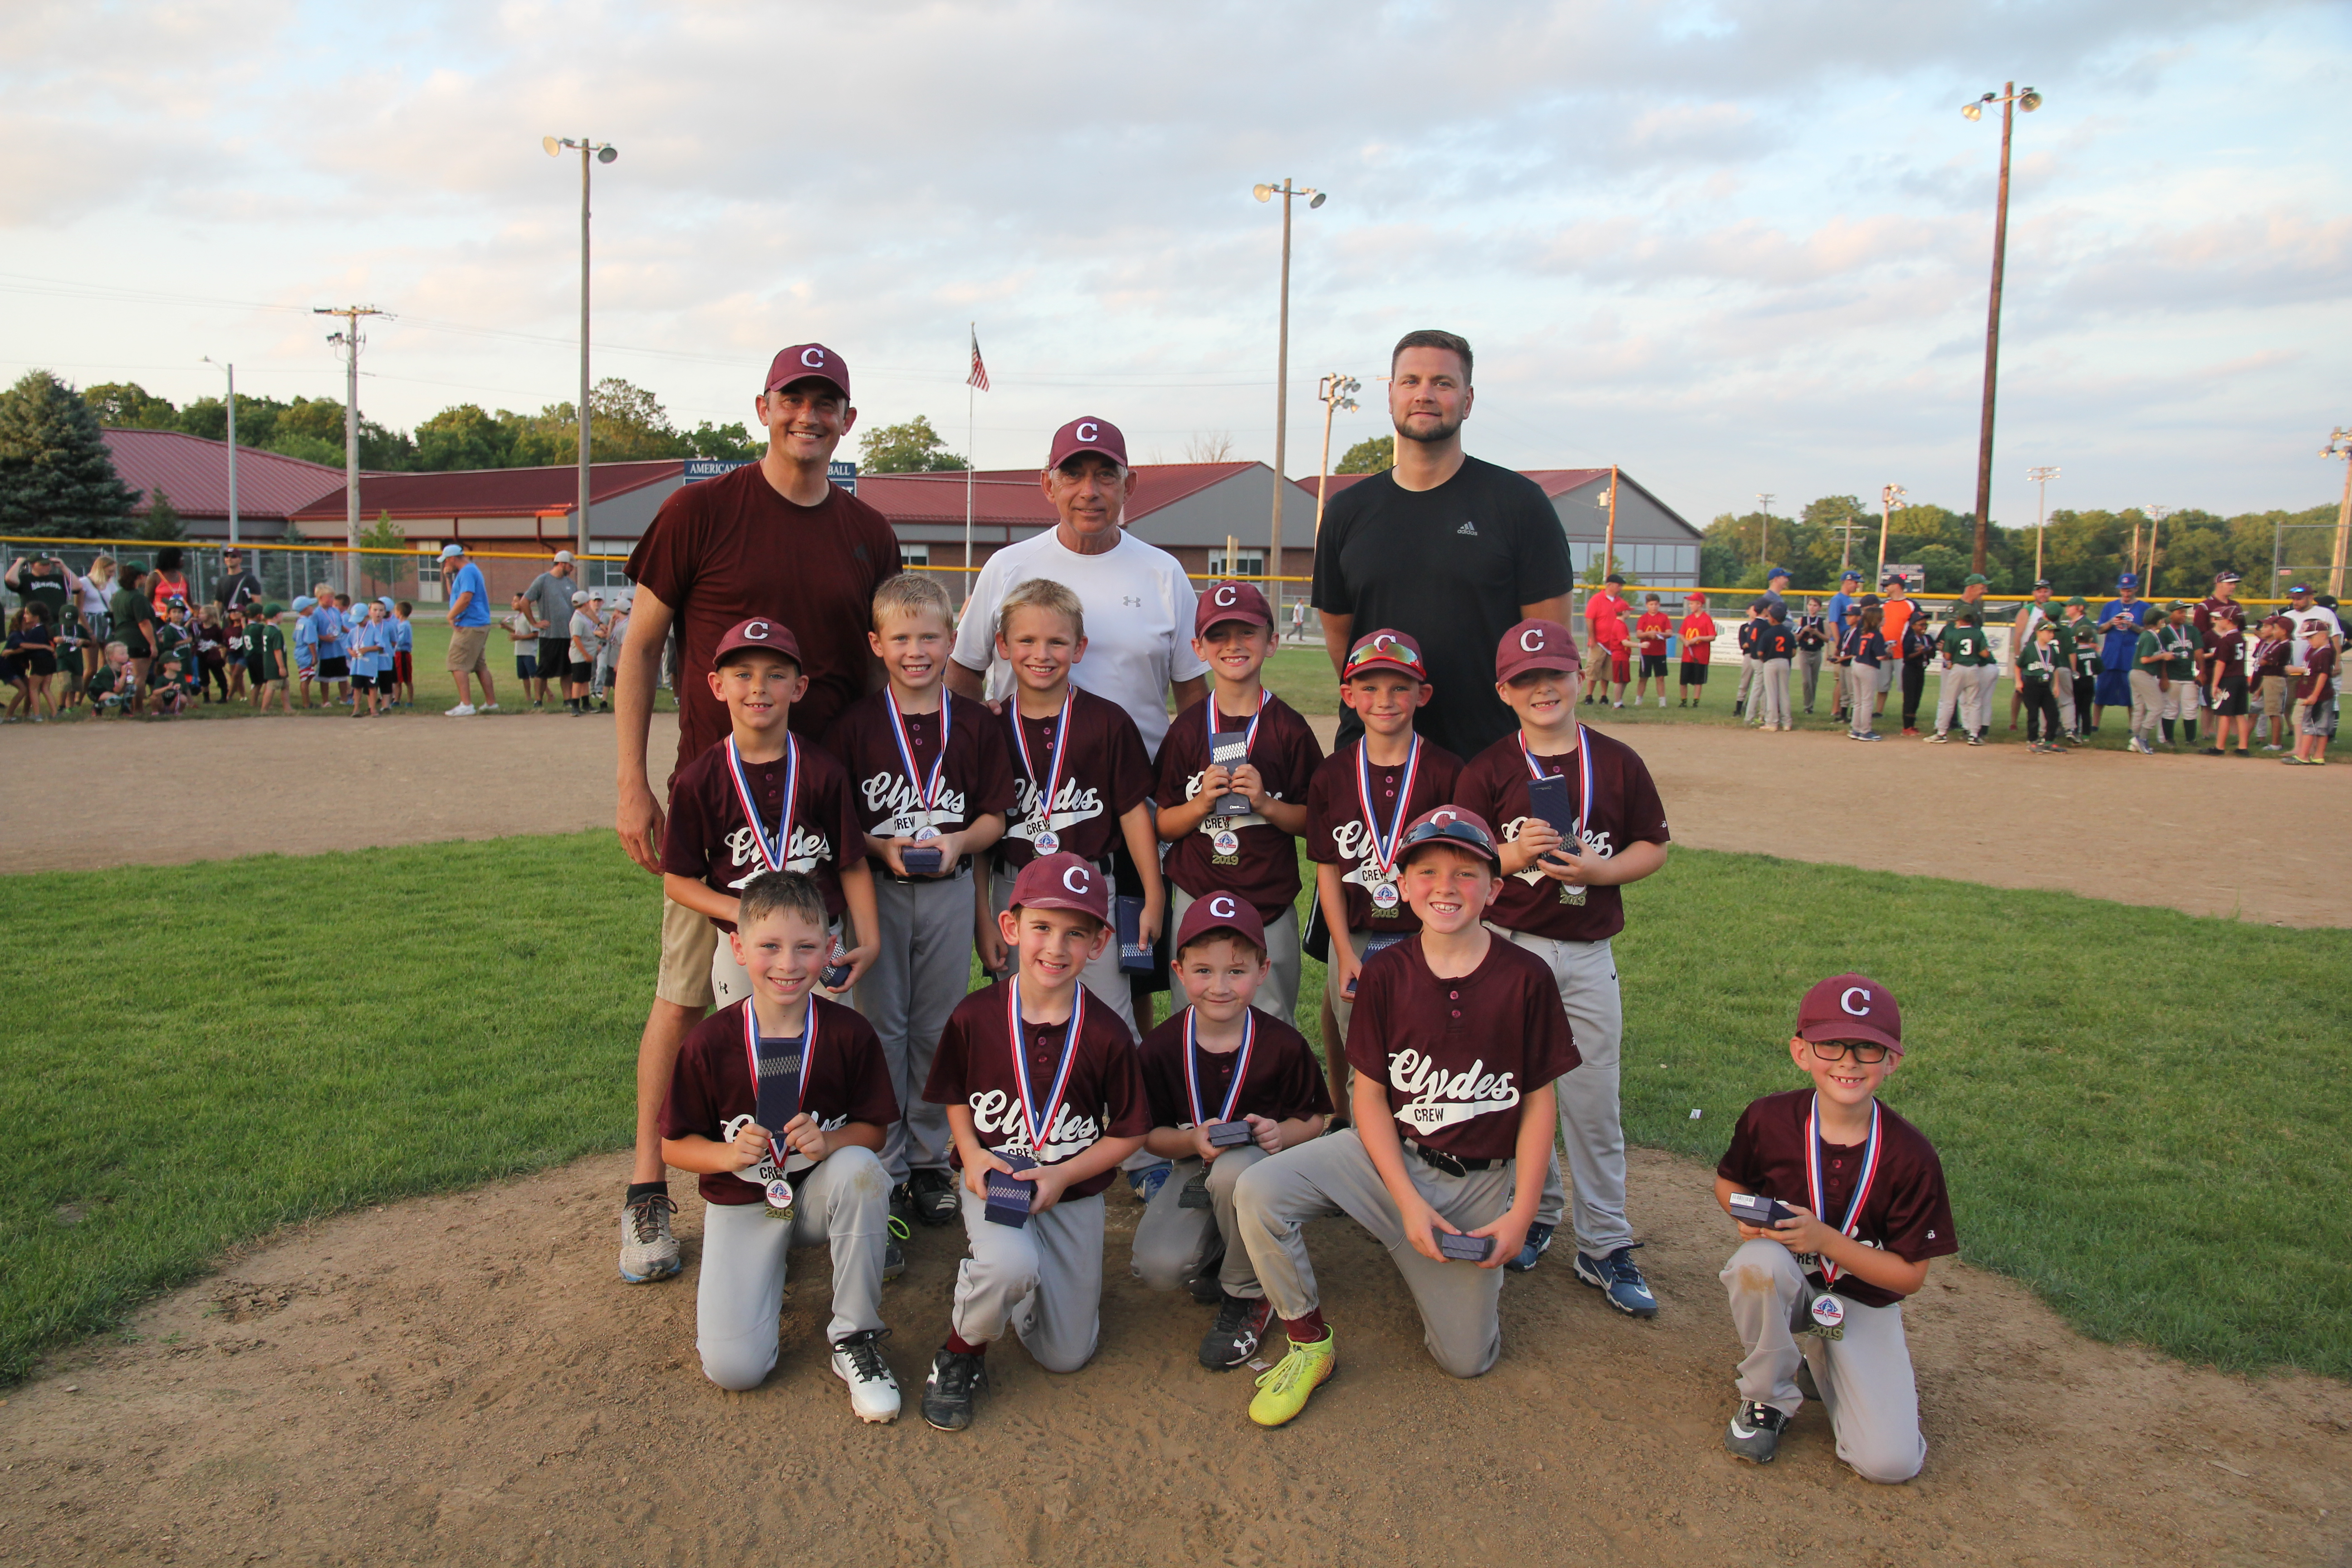 American Legion Youth Baseball – Danville, IL – Providing